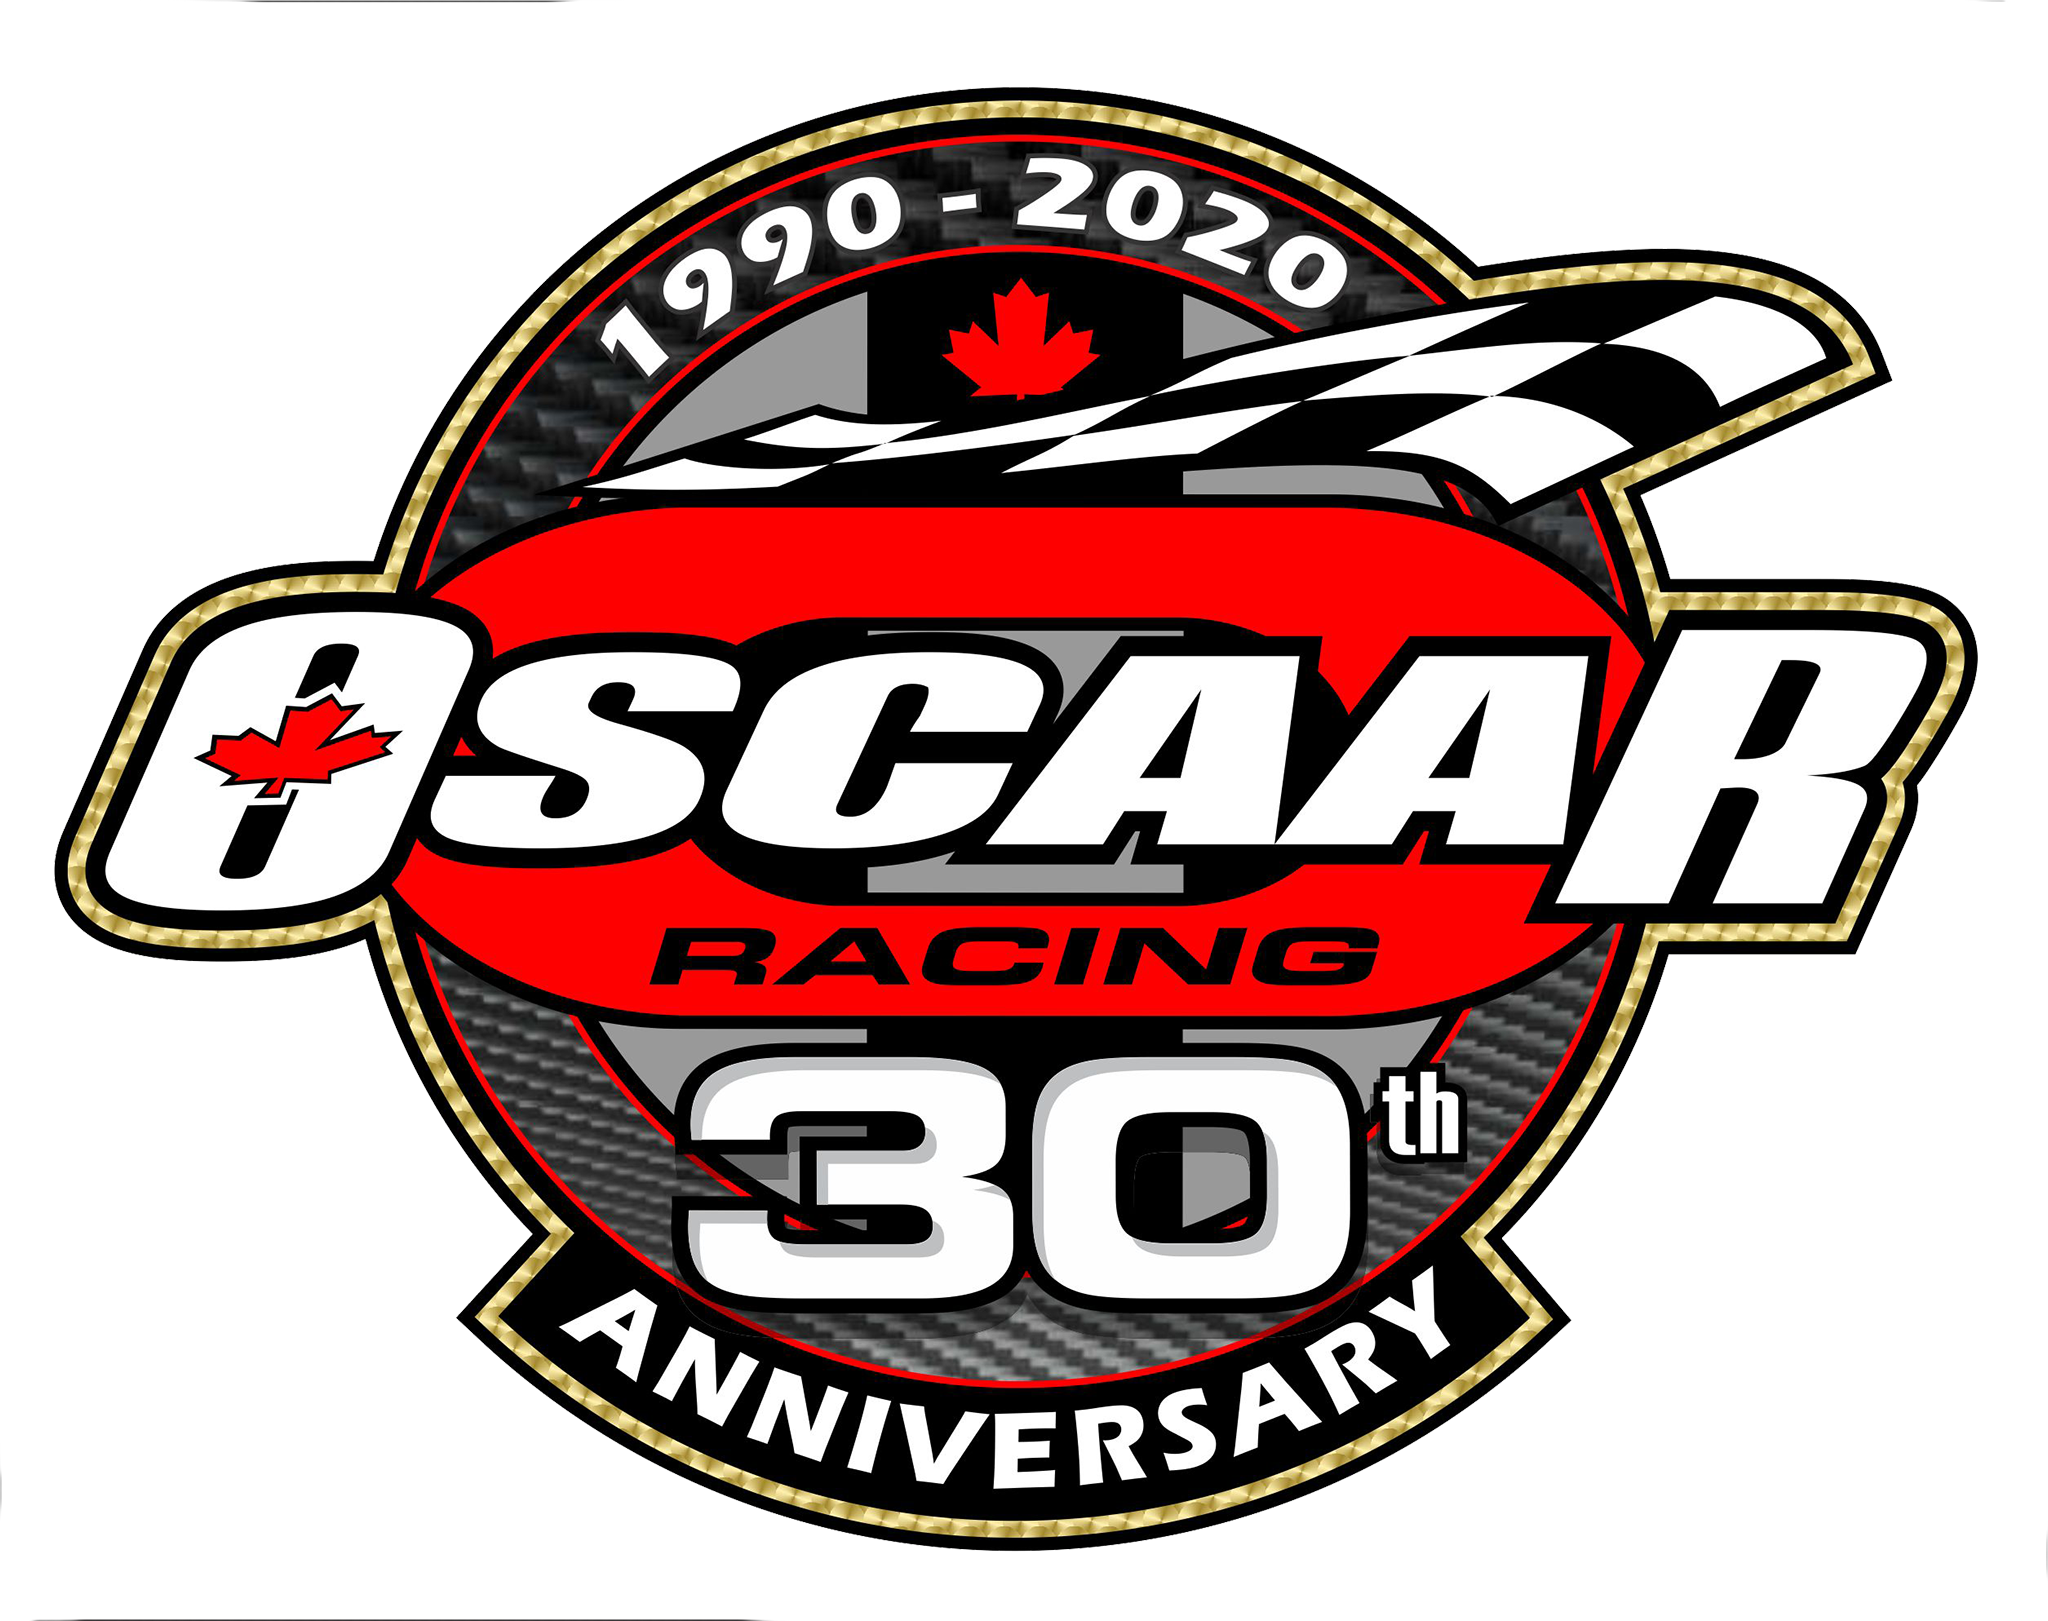 OSCAAR Racing